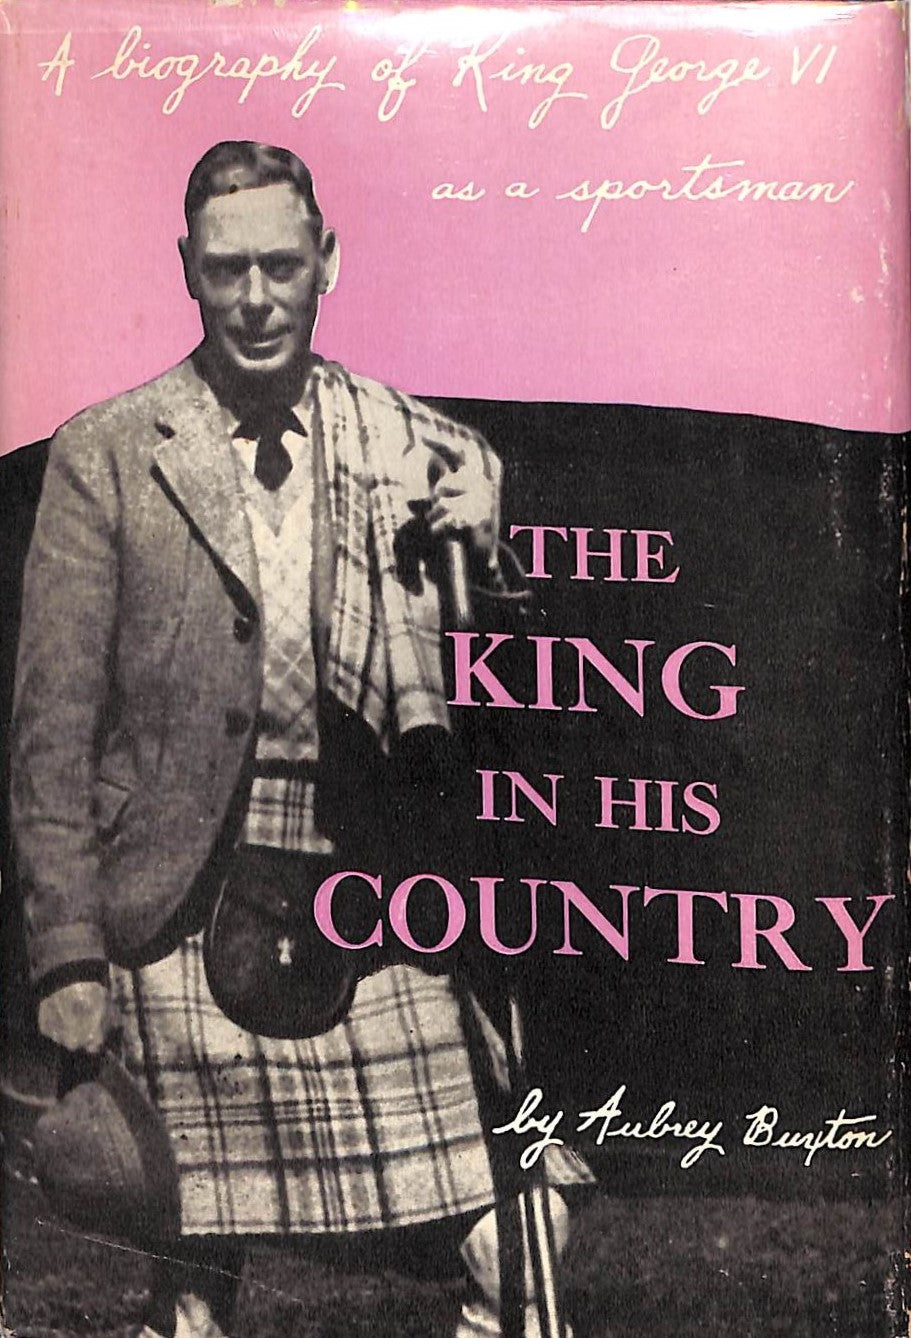 """The King in His Country: A Biography of King George VI As A Sportsman"" BUXTON, Aubrey"